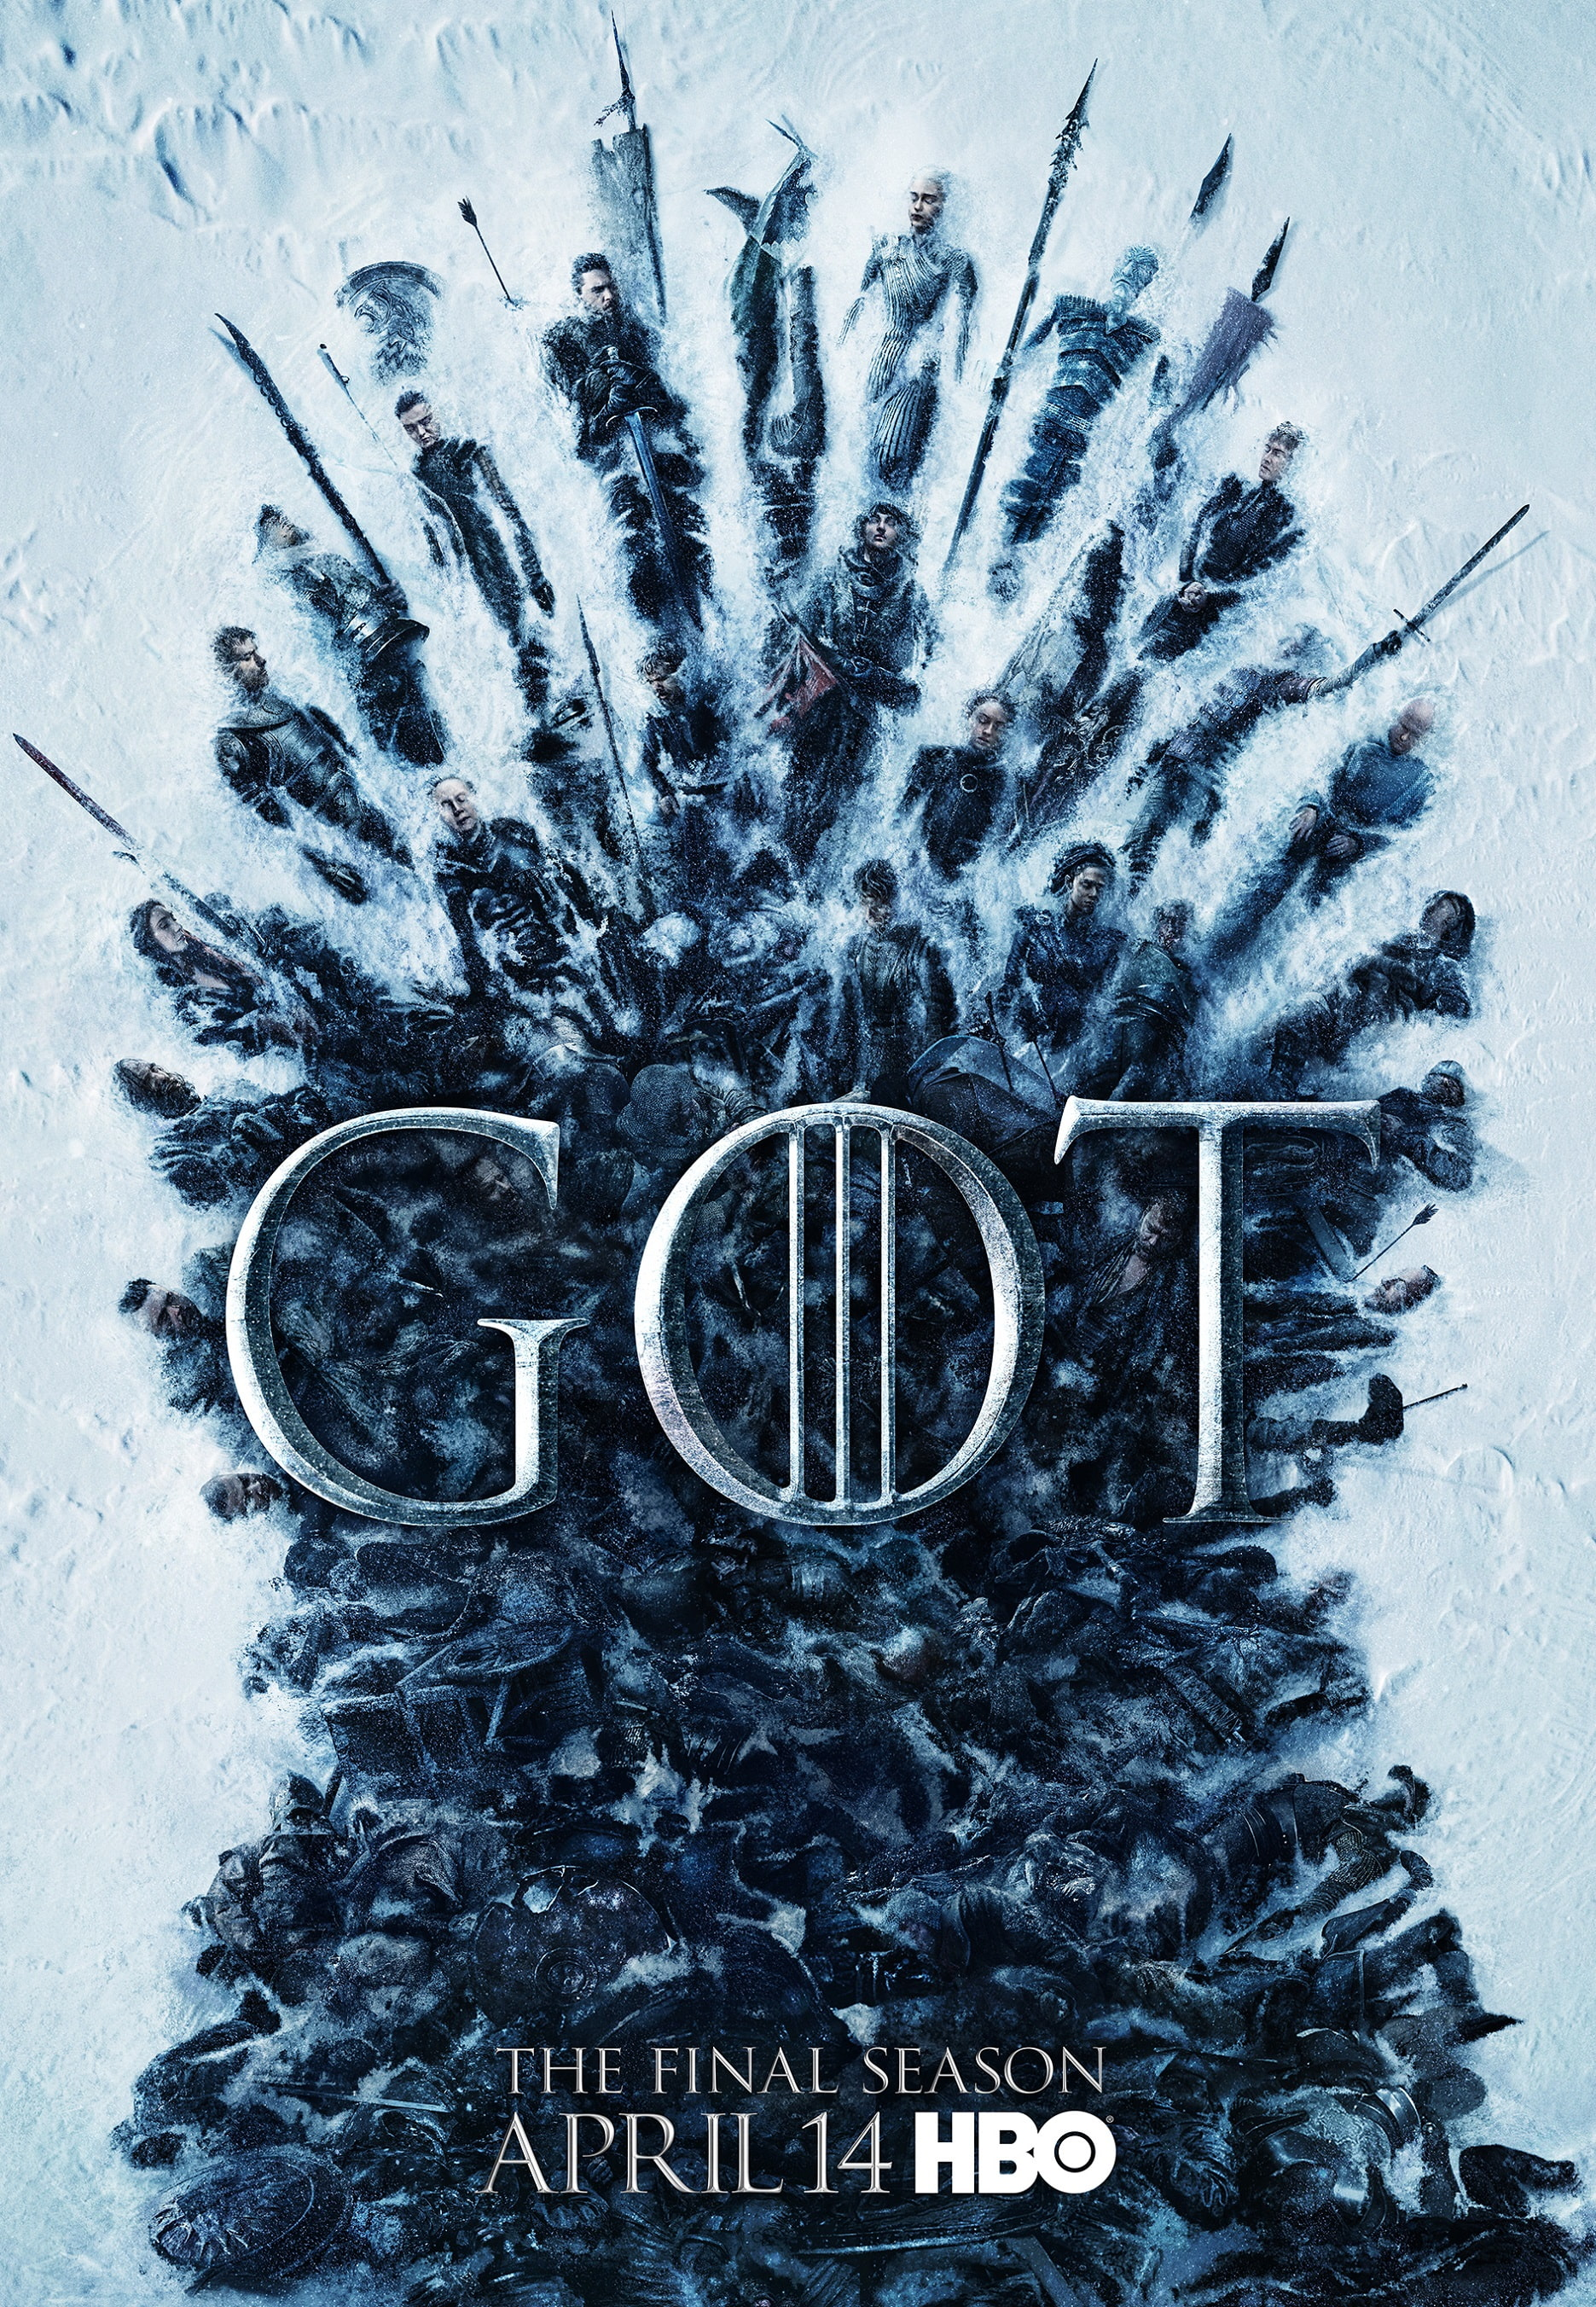 Game of Thrones Aftermath Season 8 Poster